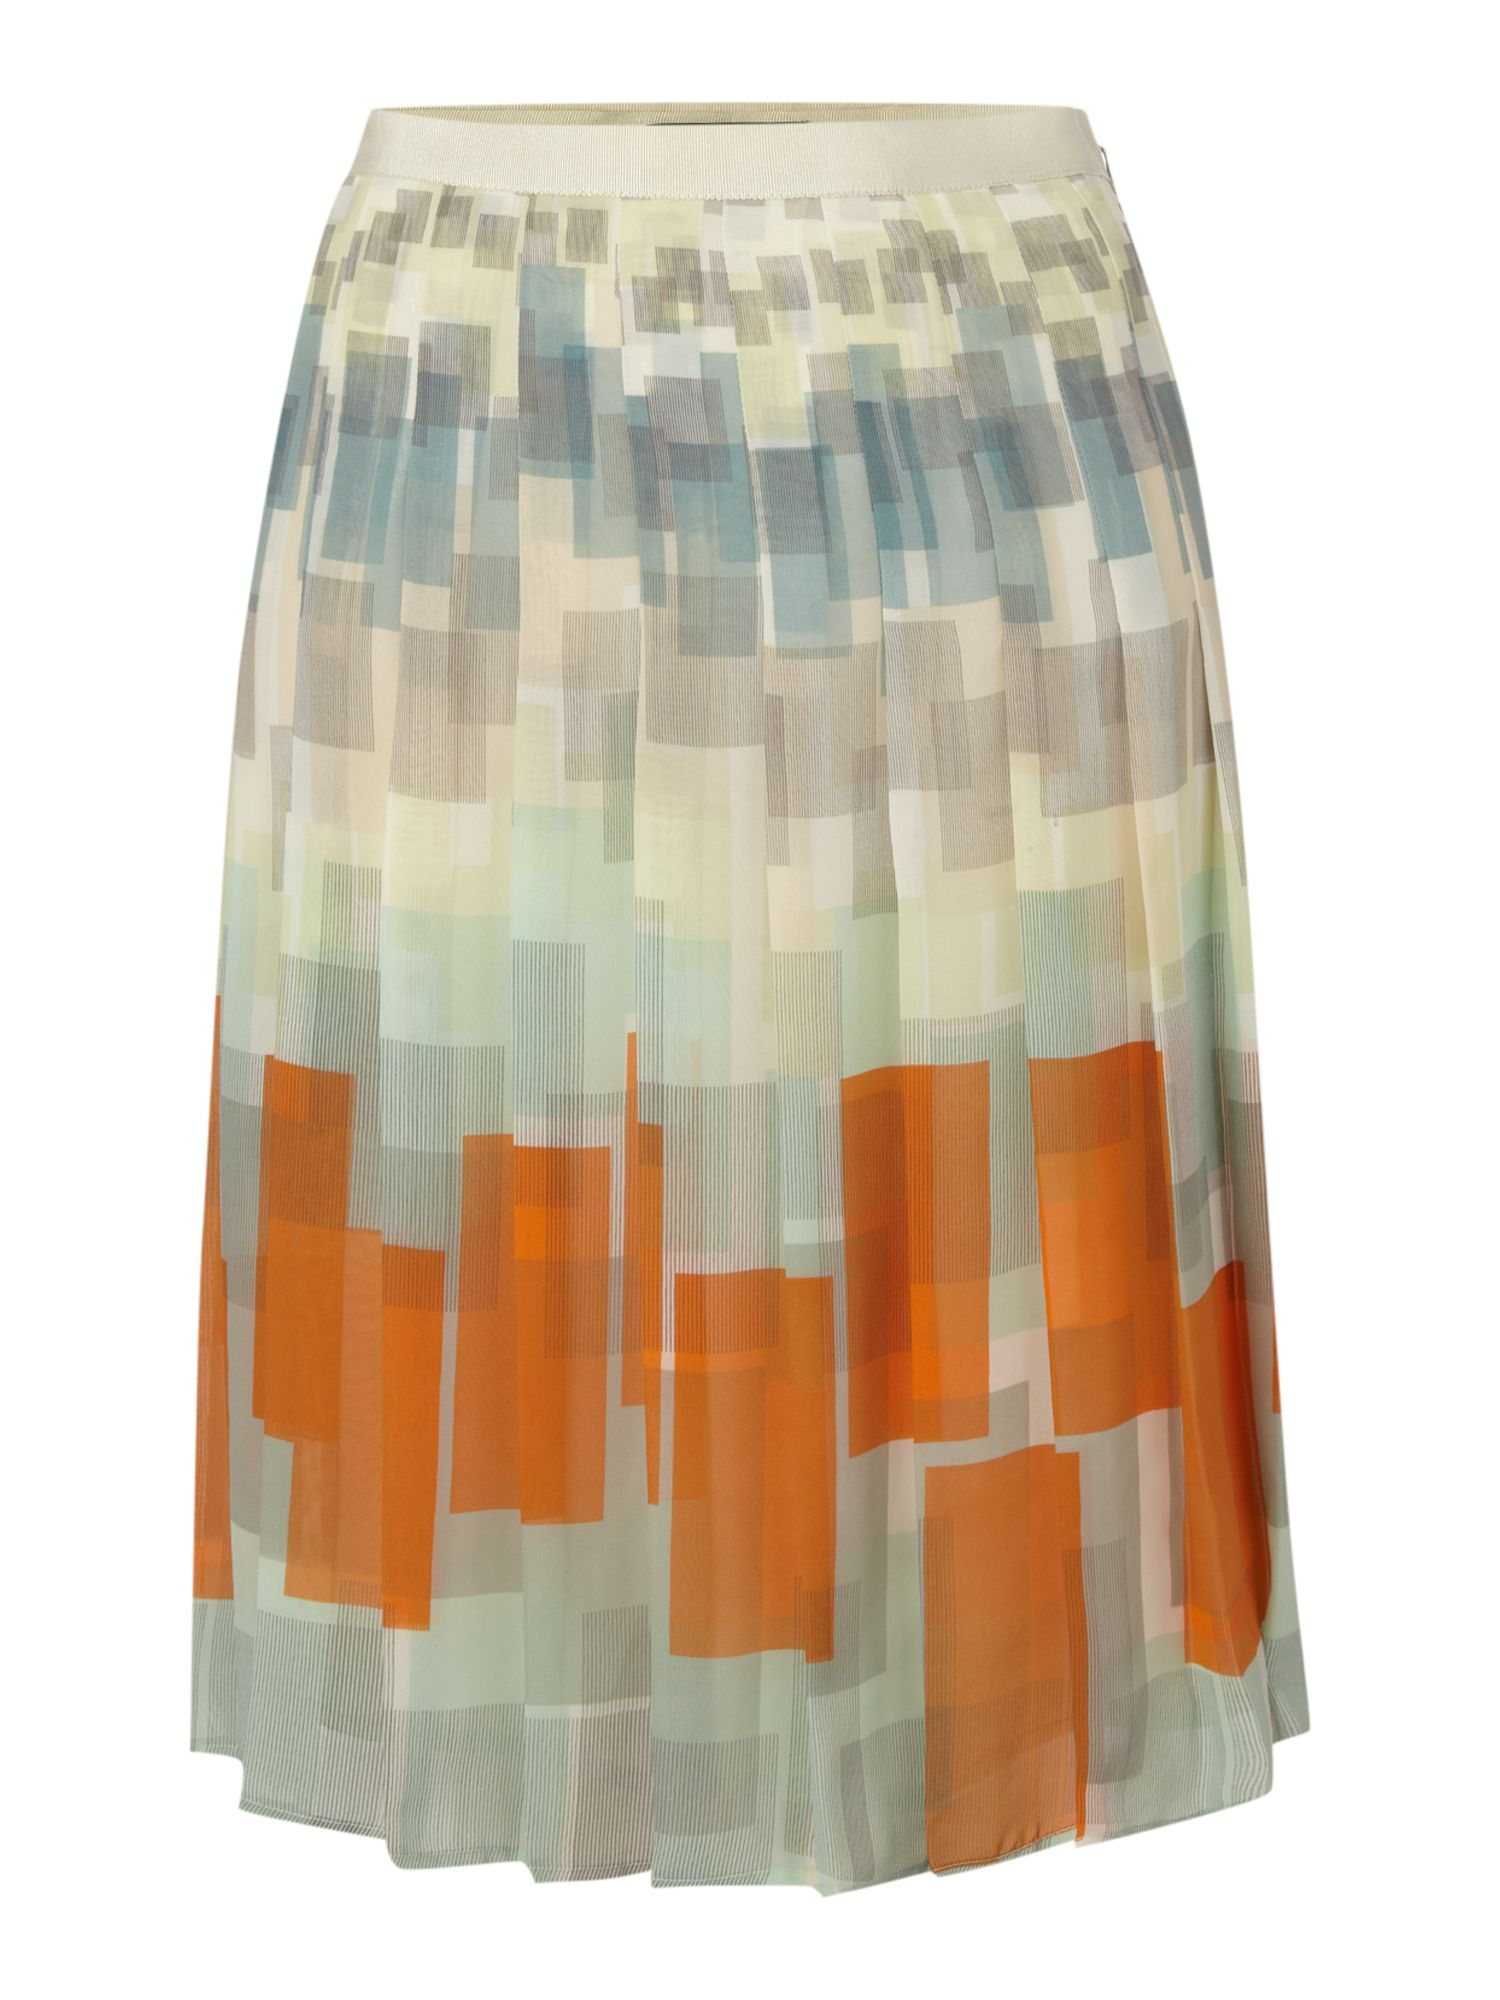 Geo square printed floaty skirt